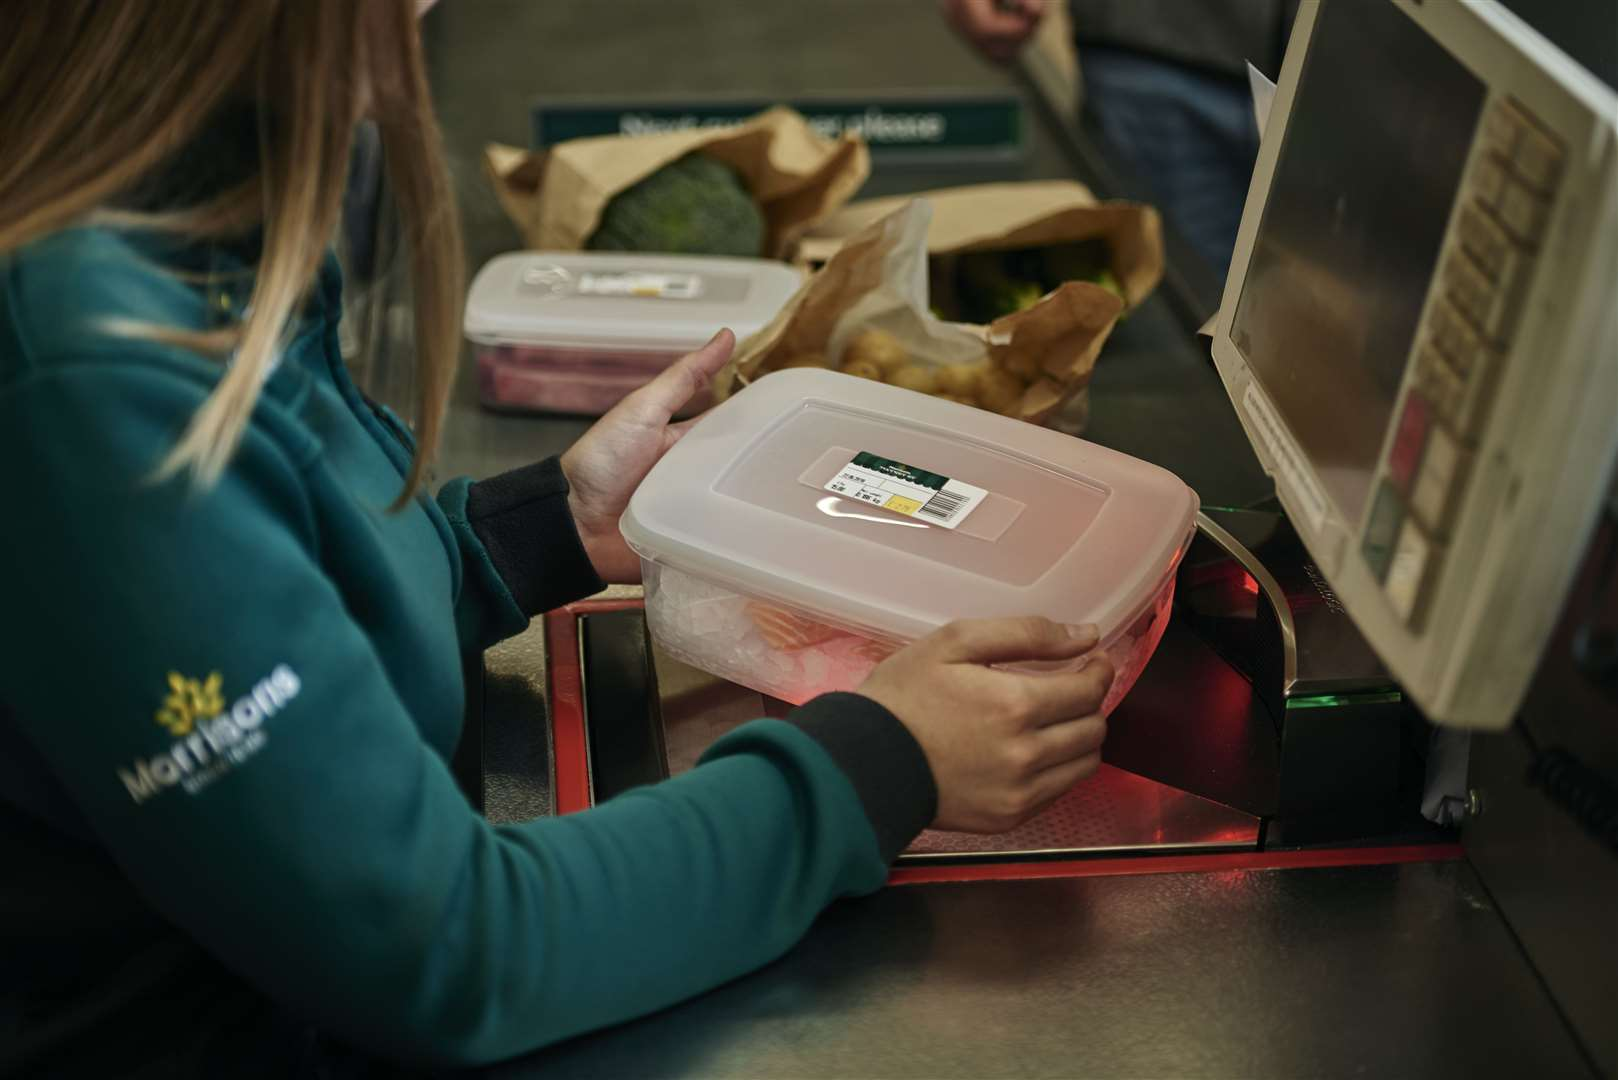 Morrisons customers who use its deli counters are asked to bring their own reusable containers